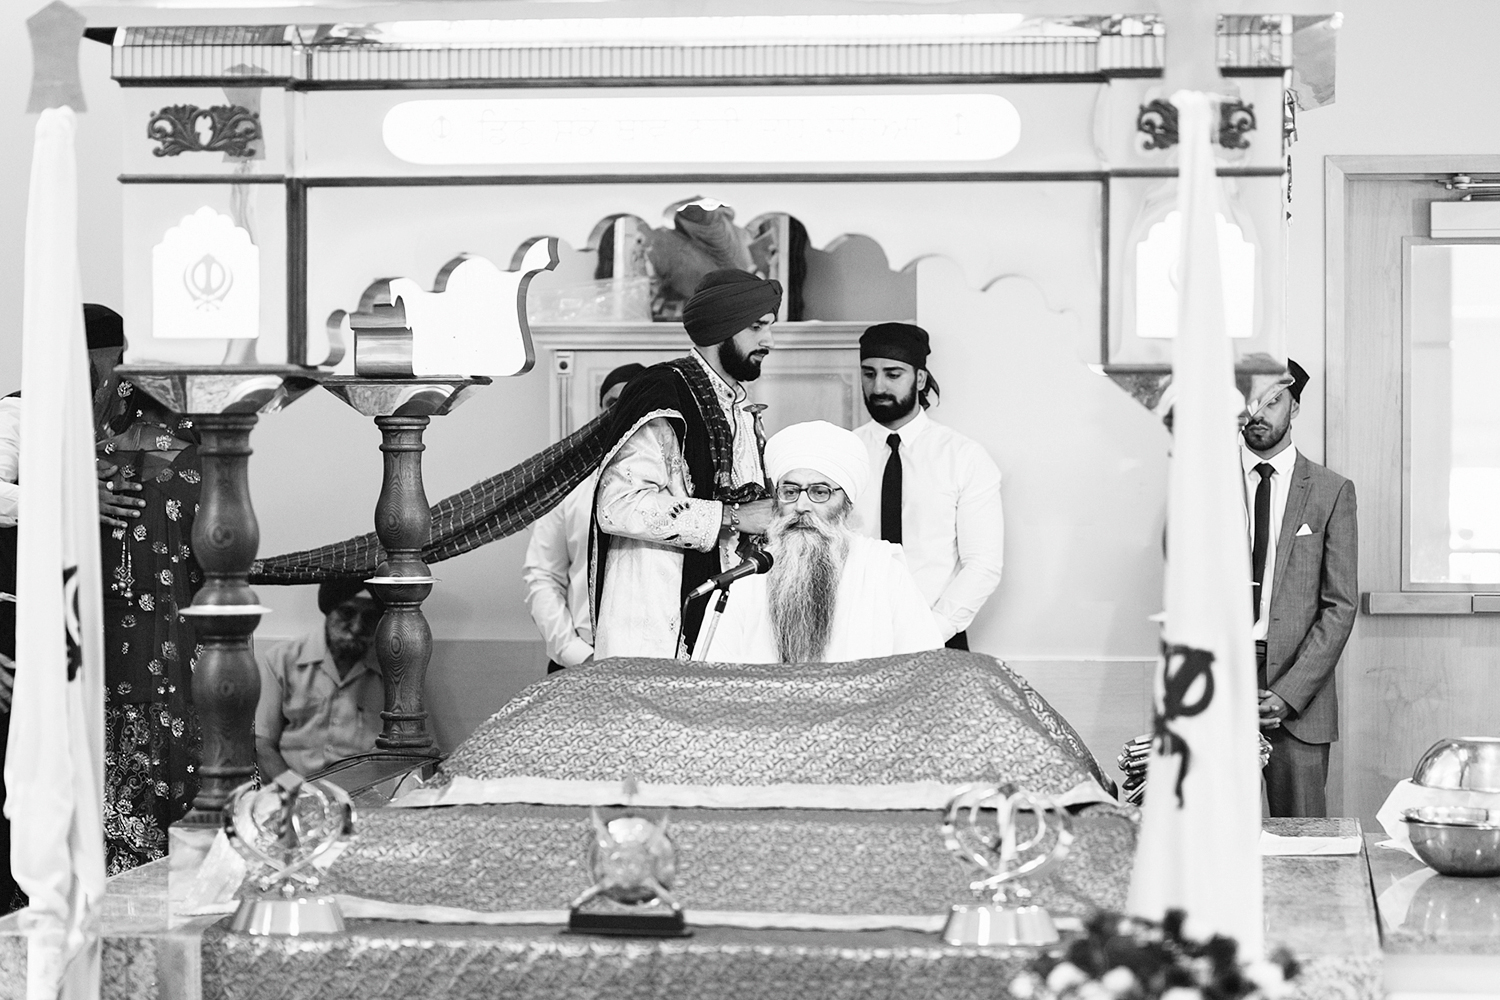 Toronto's-Best-Wedding-Photographers-Multicultural-wedding-specialty-ontario-port-perry-ceremony-at-temple-candid-documentary-photos-photojournalistic-sikh-wedding-intimate-special-tradition-groom.jpg